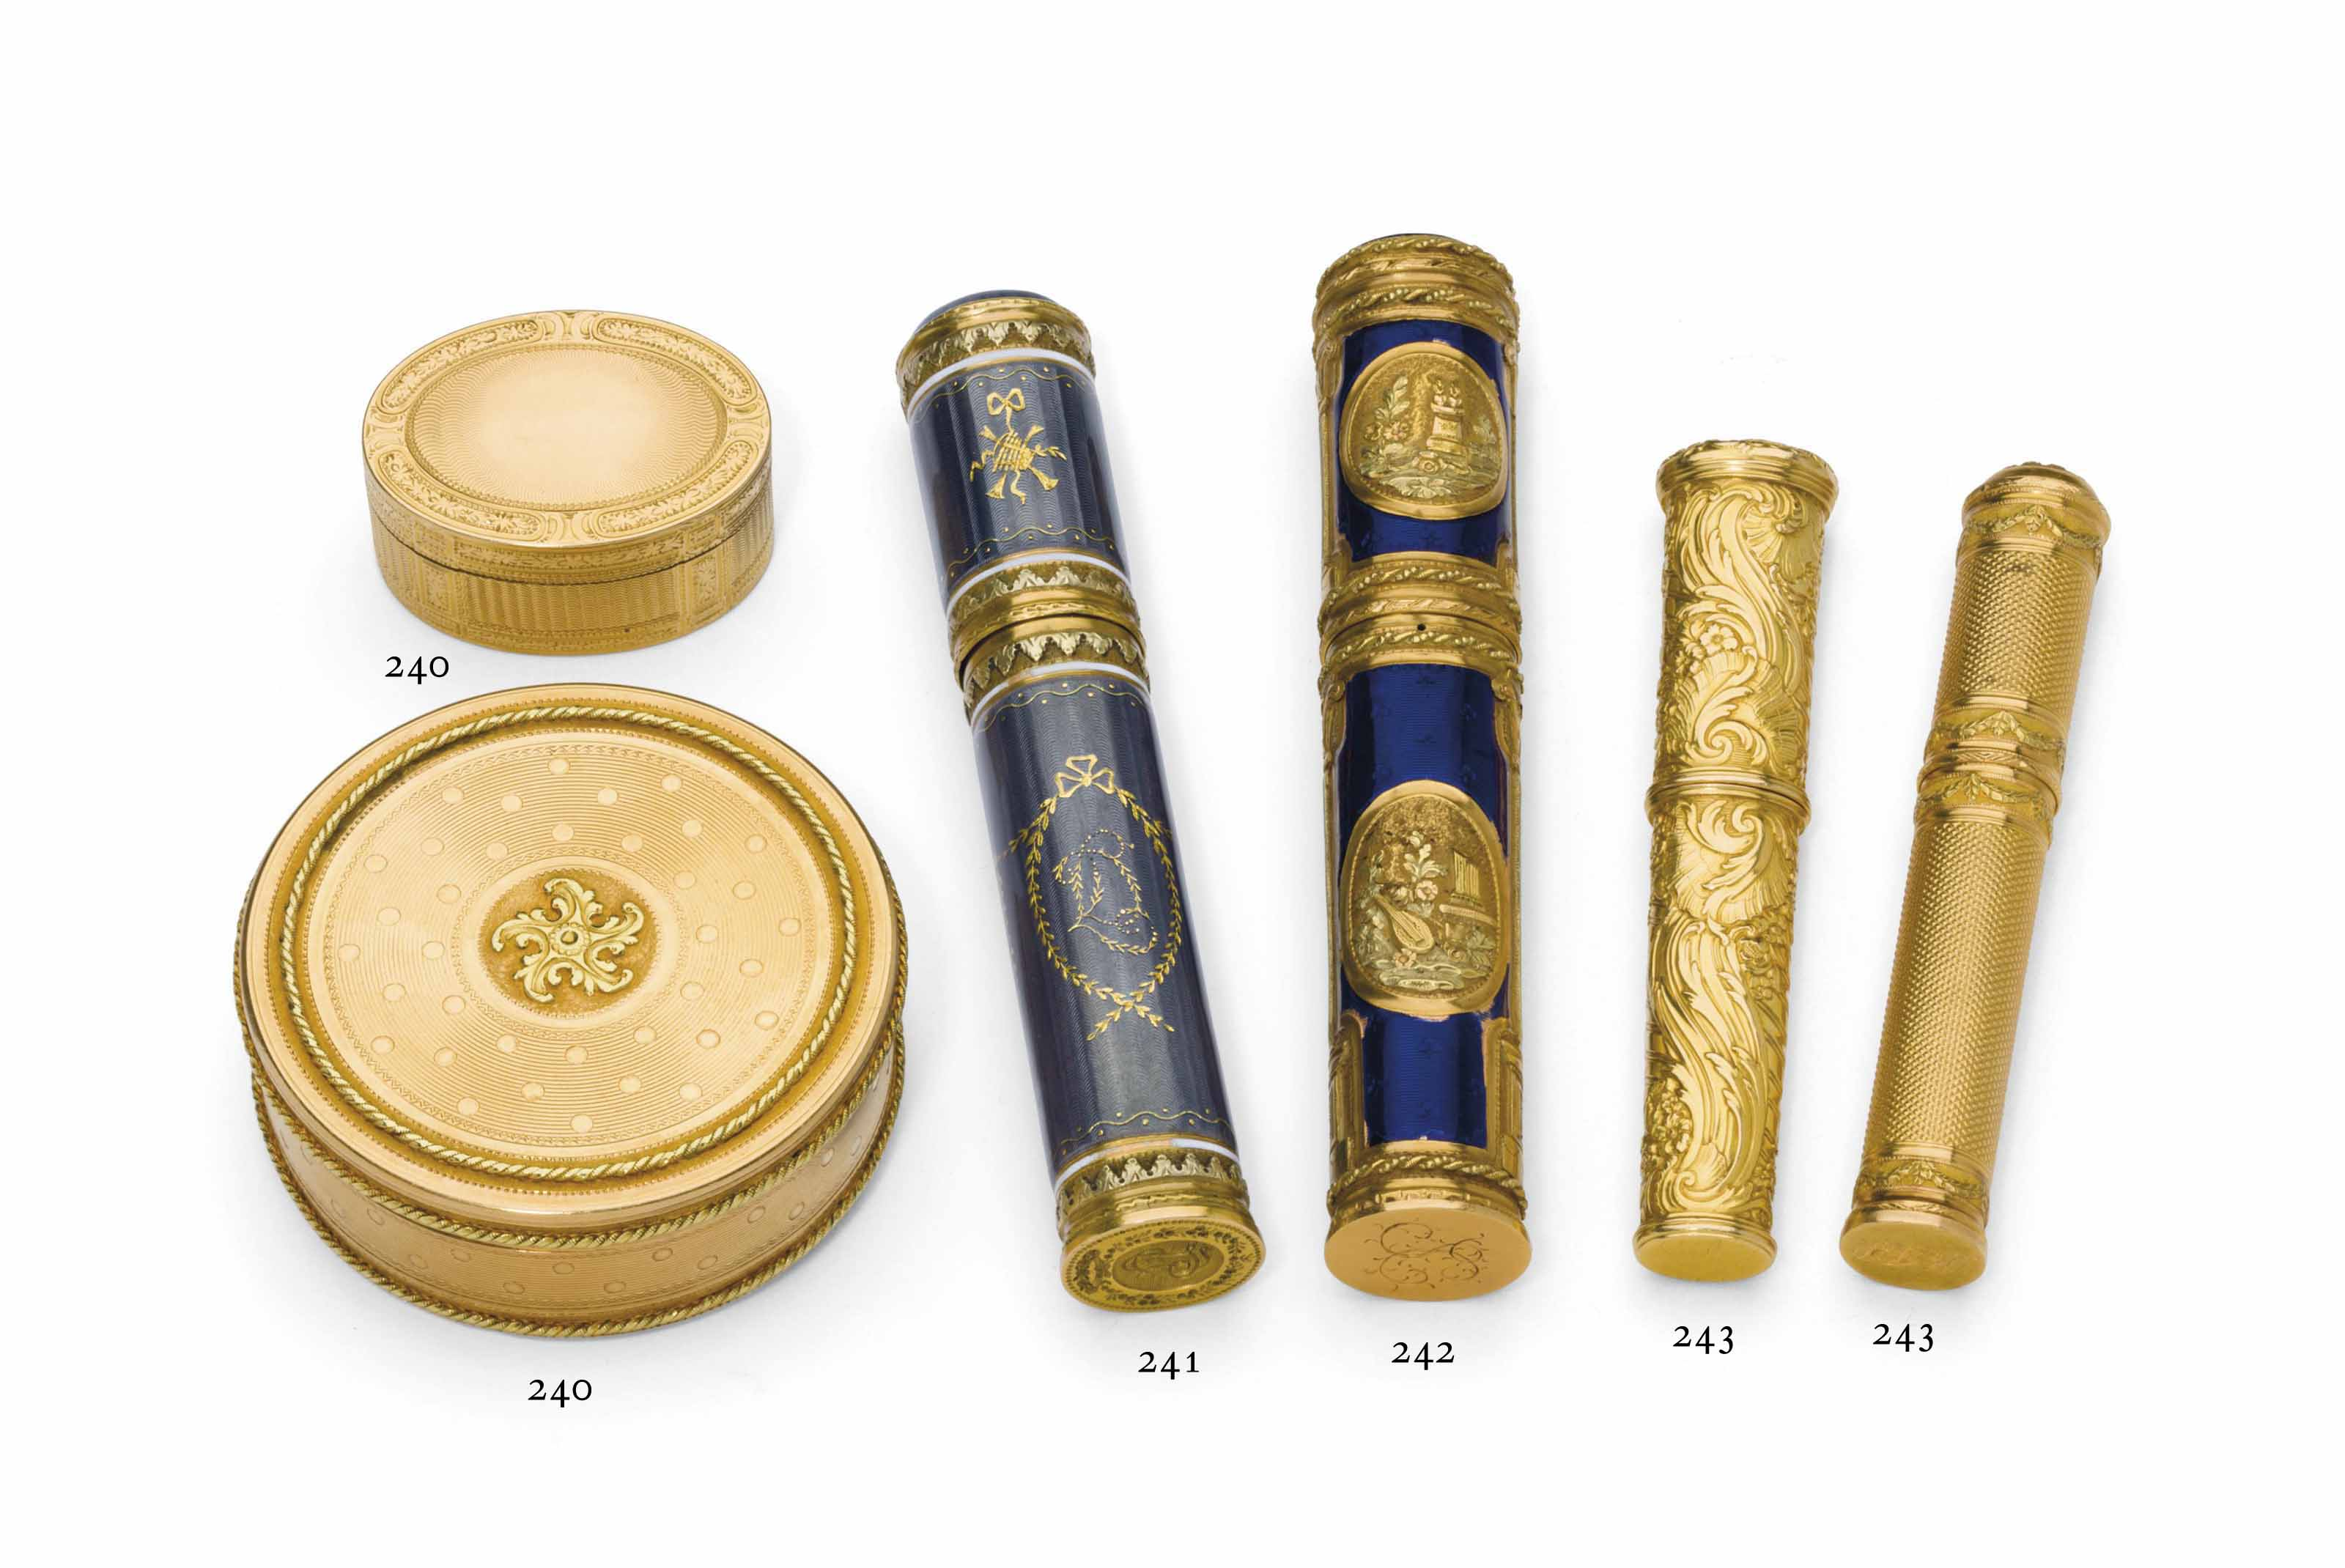 A LOUIS XVI TWO-COLOR GOLD BON